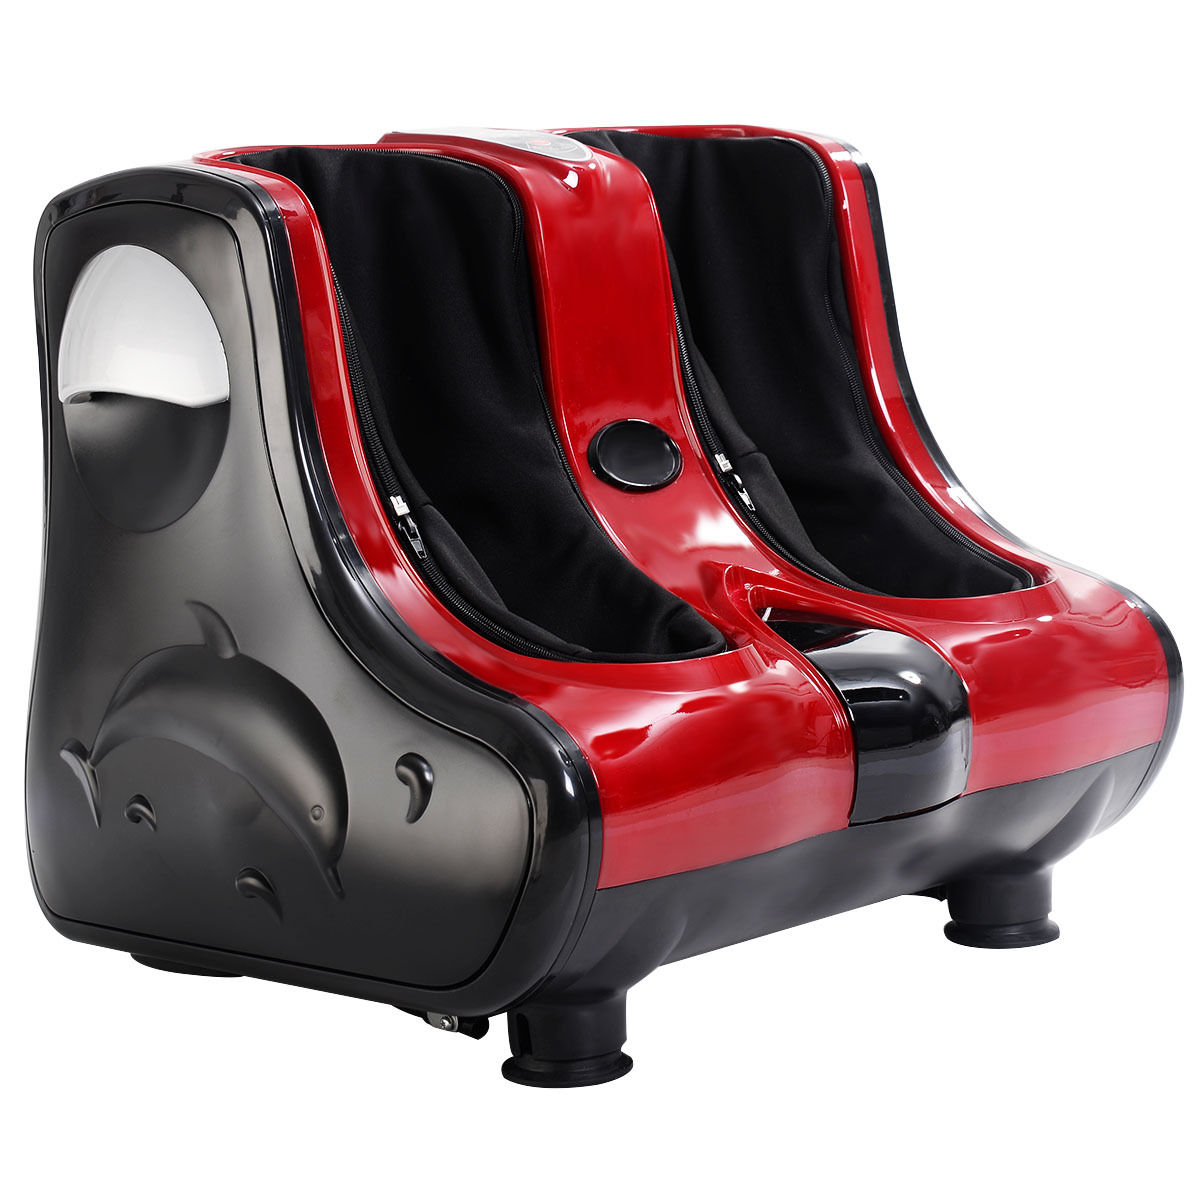 Costway Shiatsu Kneading Rolling Vibration Heating Foot Calf Leg Massager